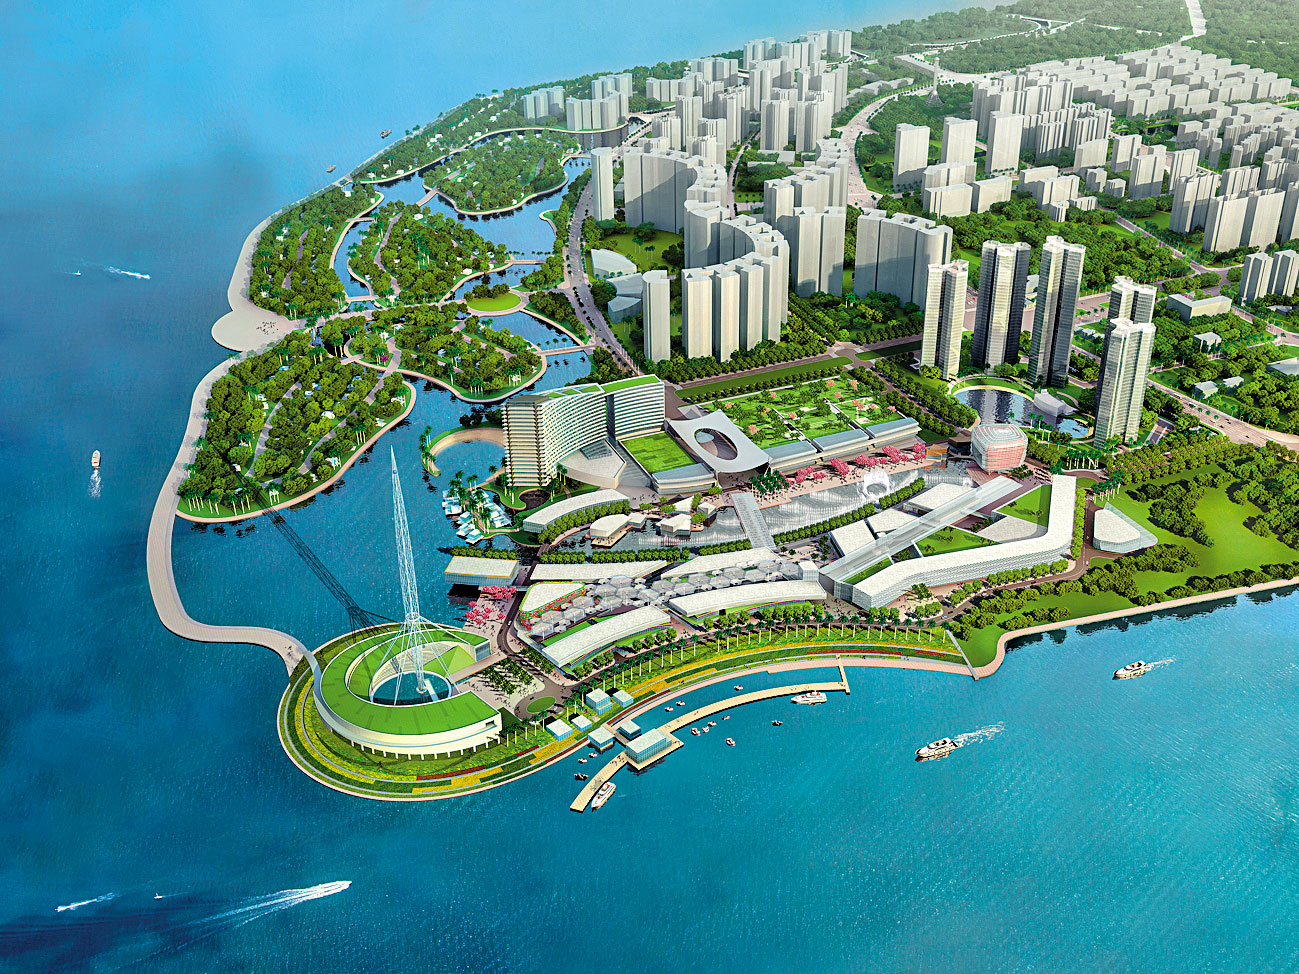 Haikou Meilisha Waterfront, Hainan Island (SOM)